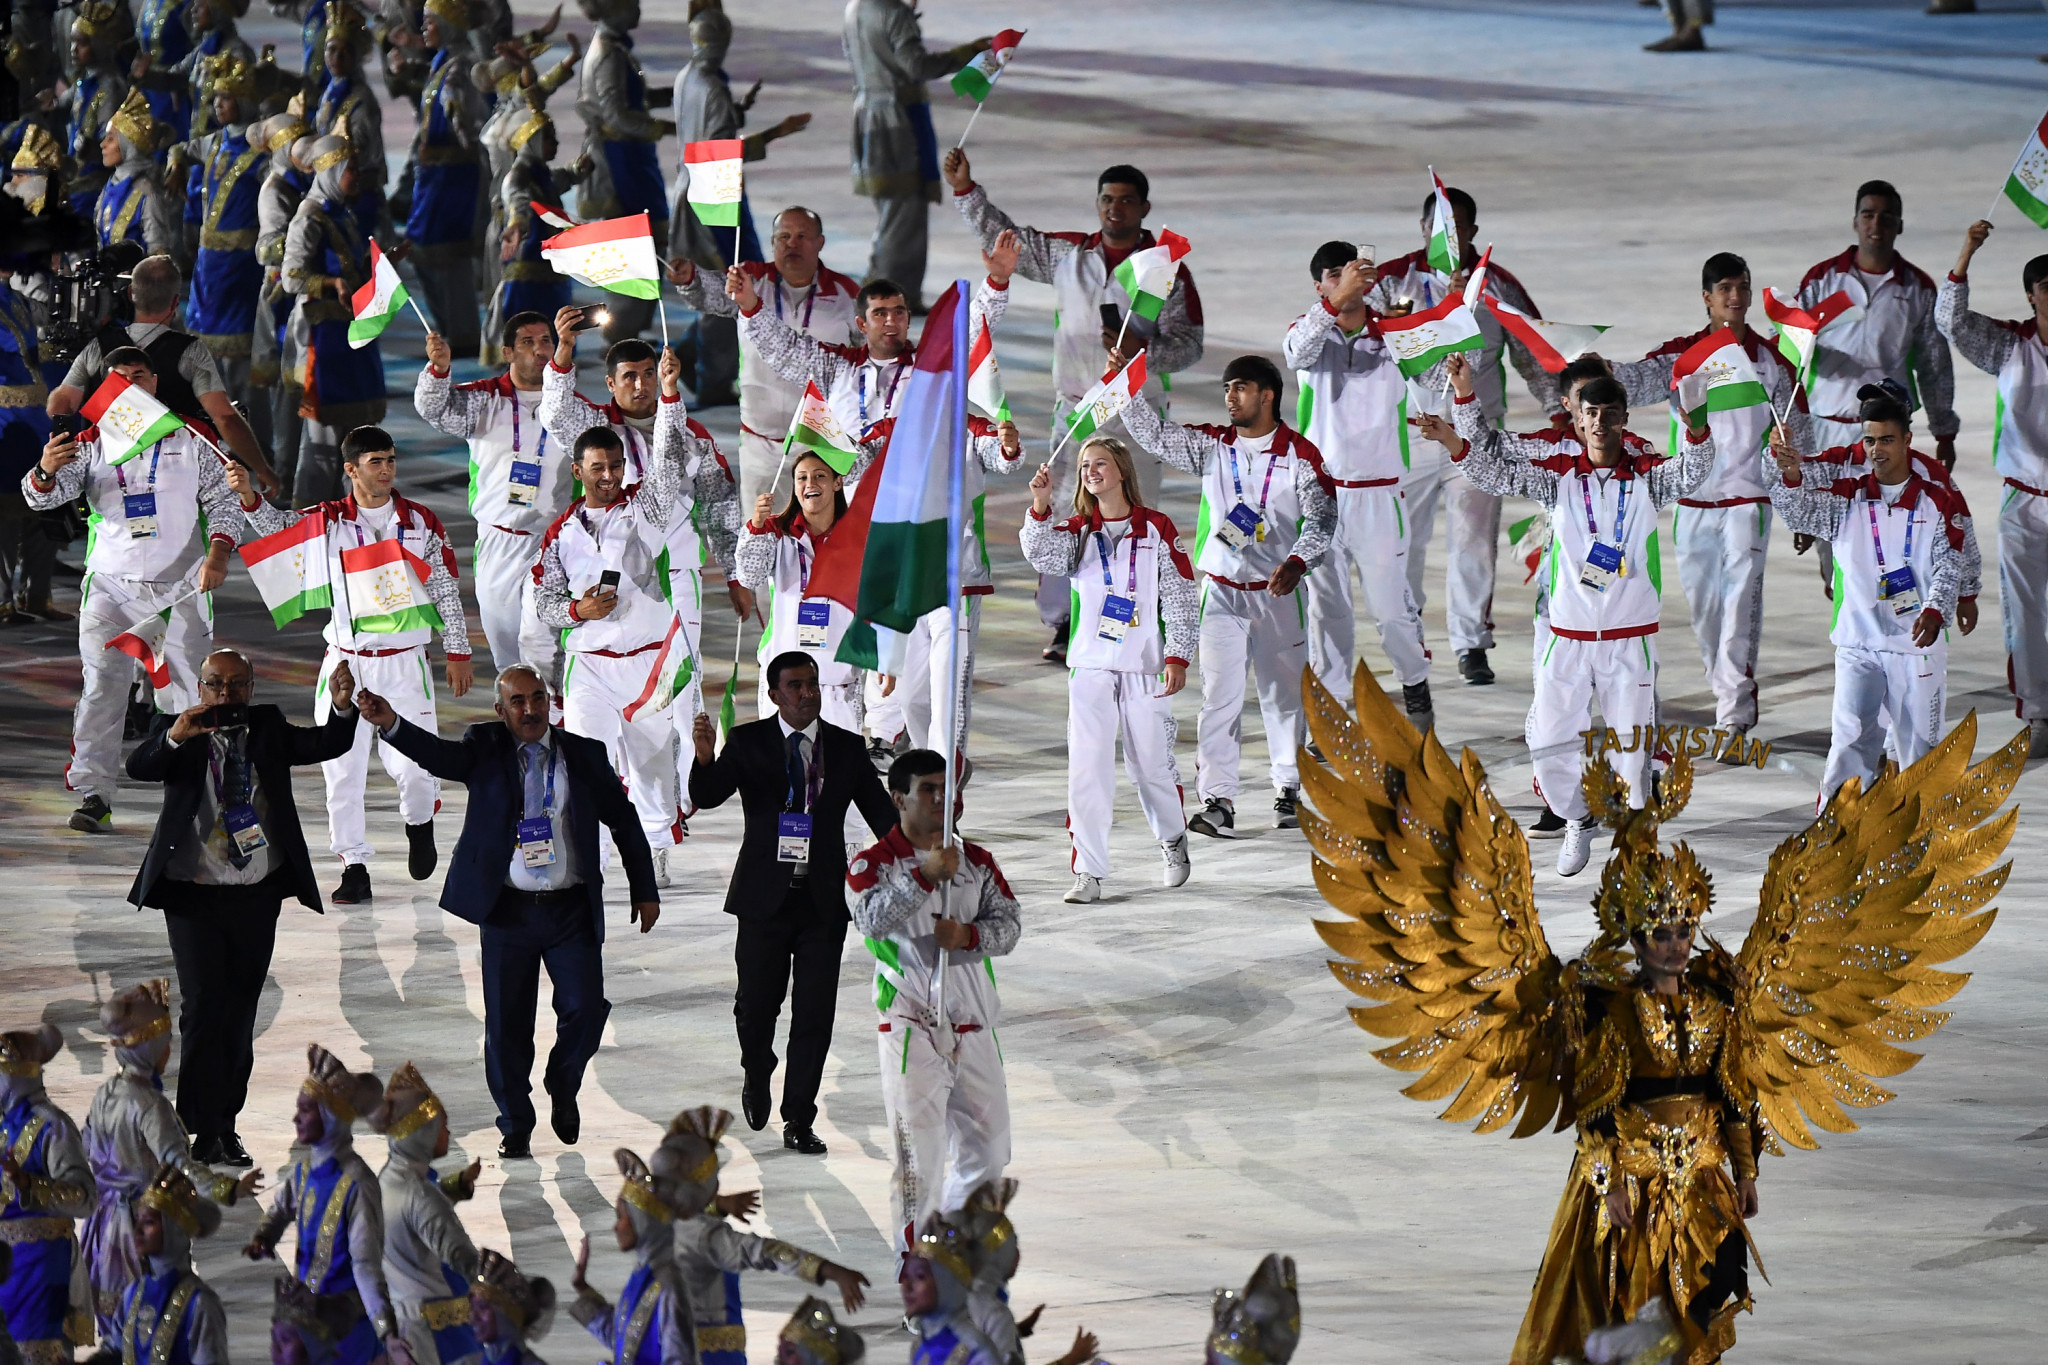 The National Olympic Committee of Tajikistan claim they will hold 1,200 seminars to increase awareness among athletes ©Getty Images